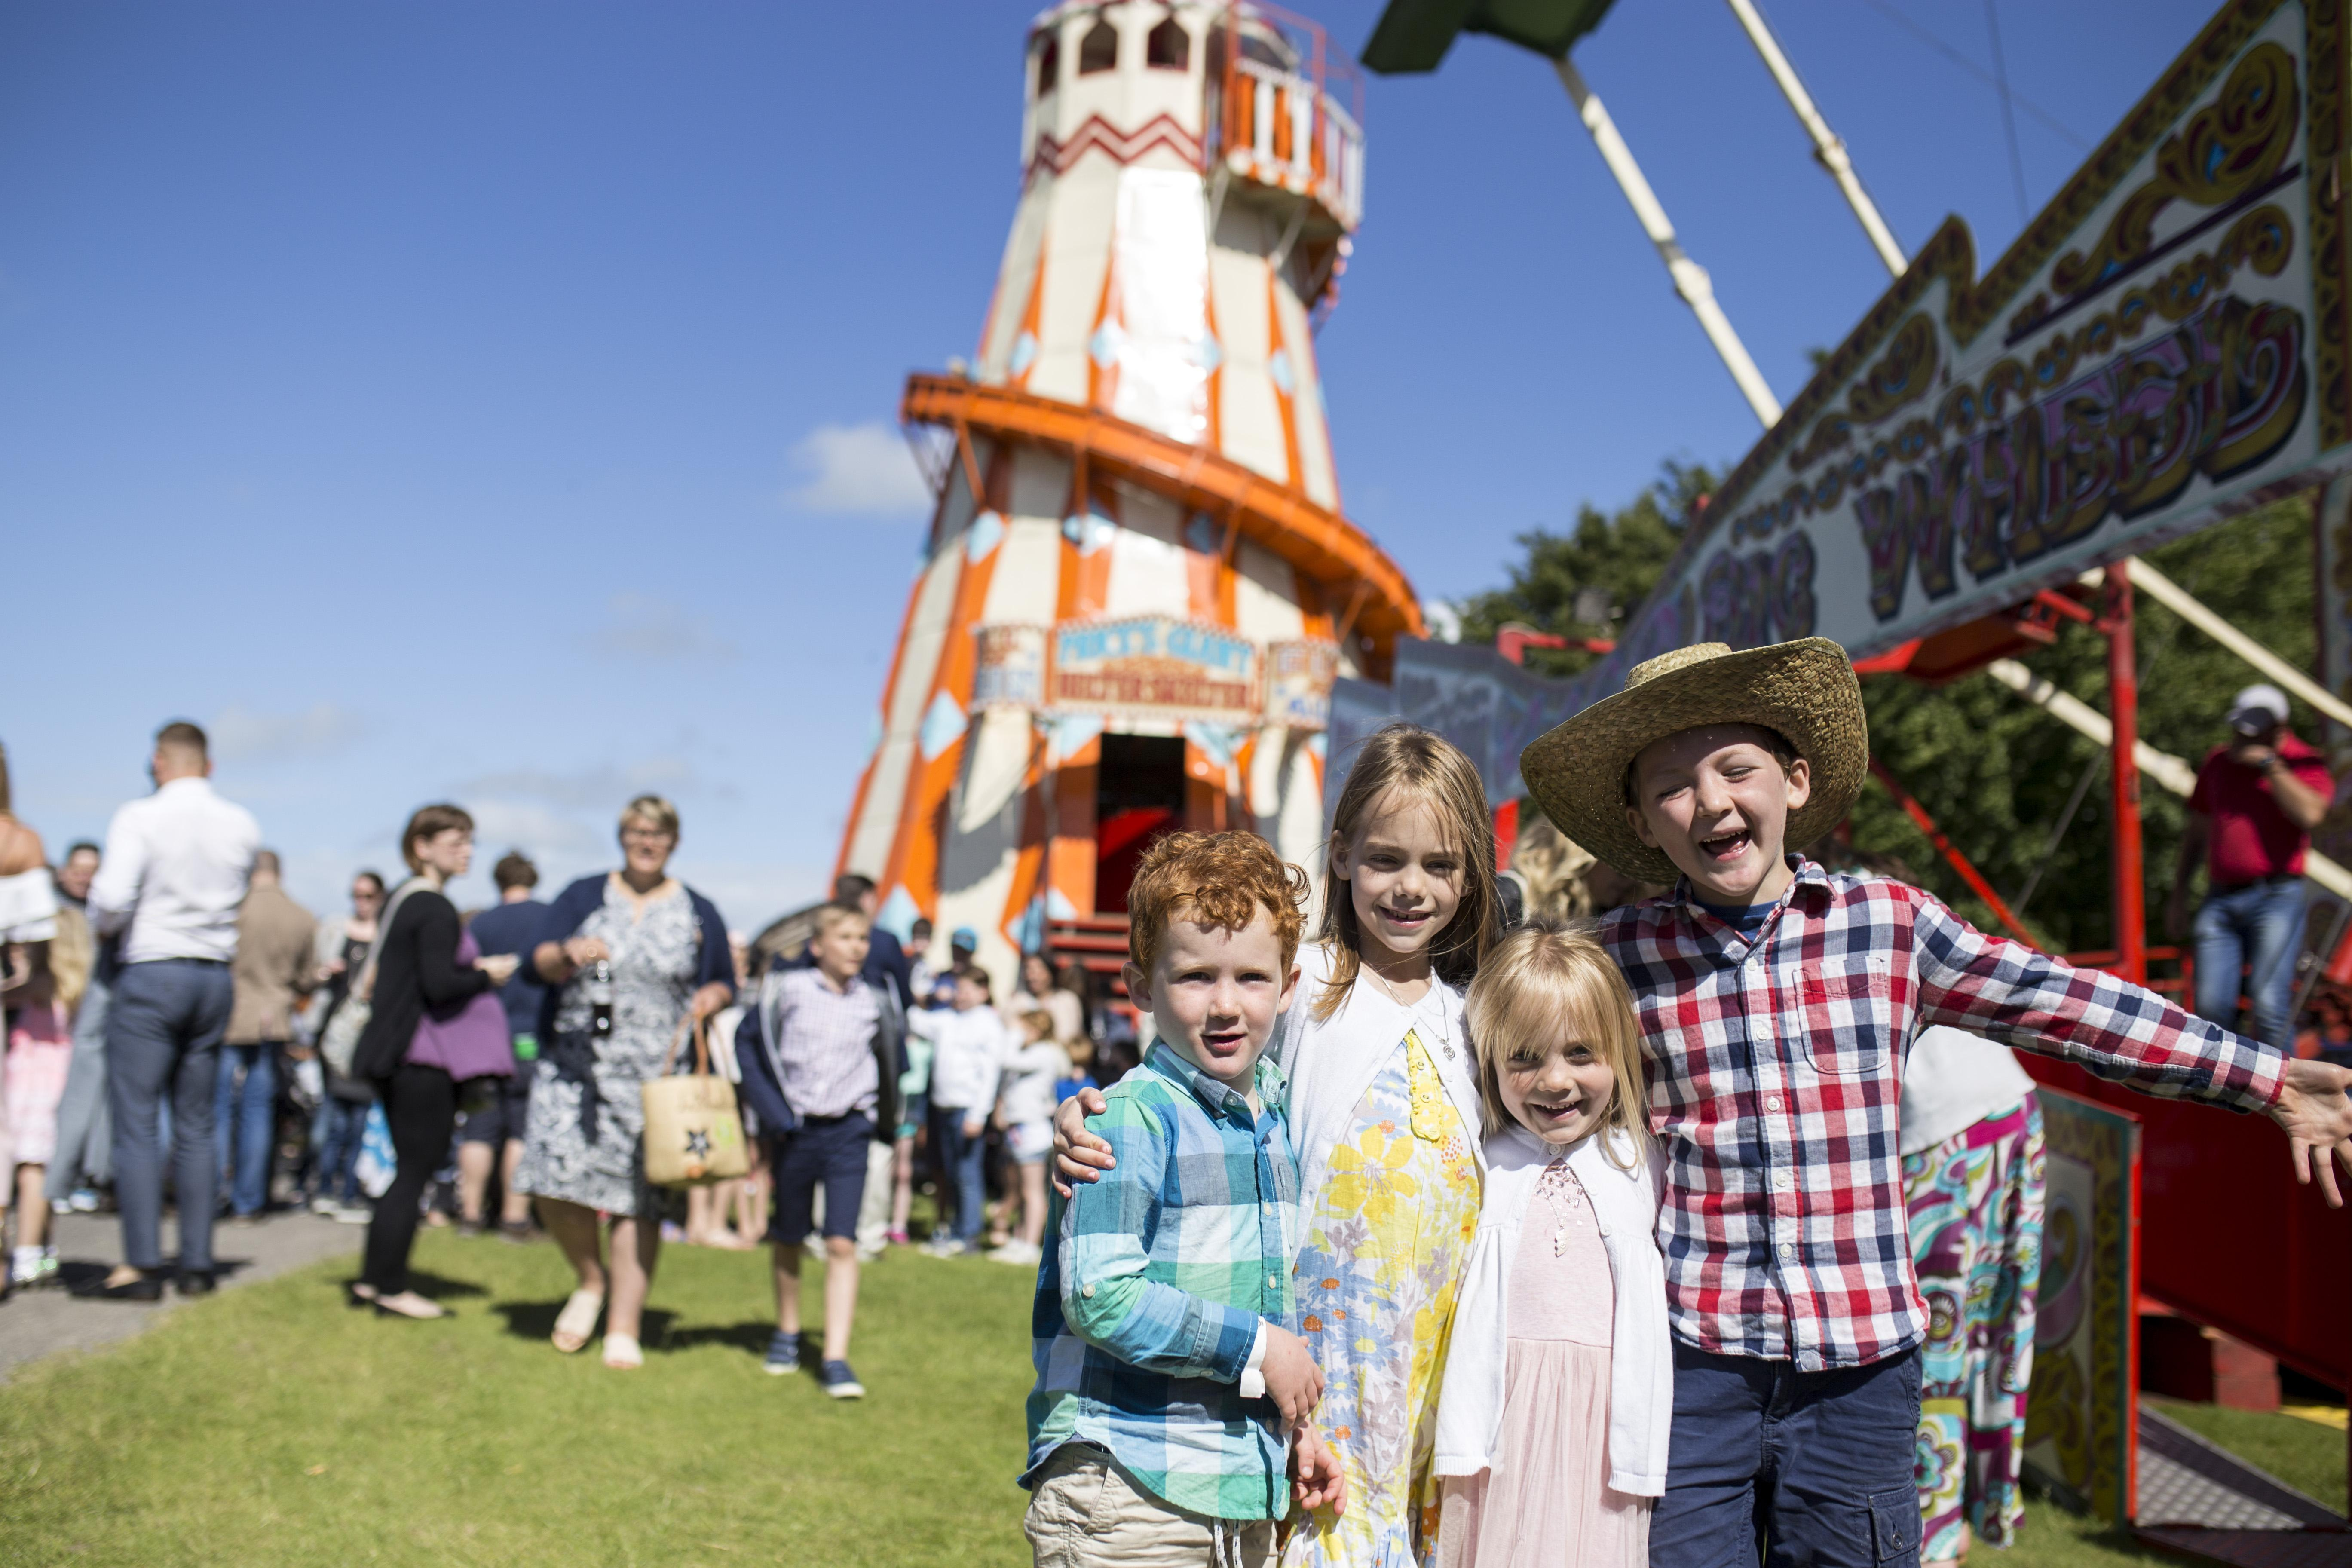 August Bank Holiday at Goodwood Racecourse | Goodwood Racecourse